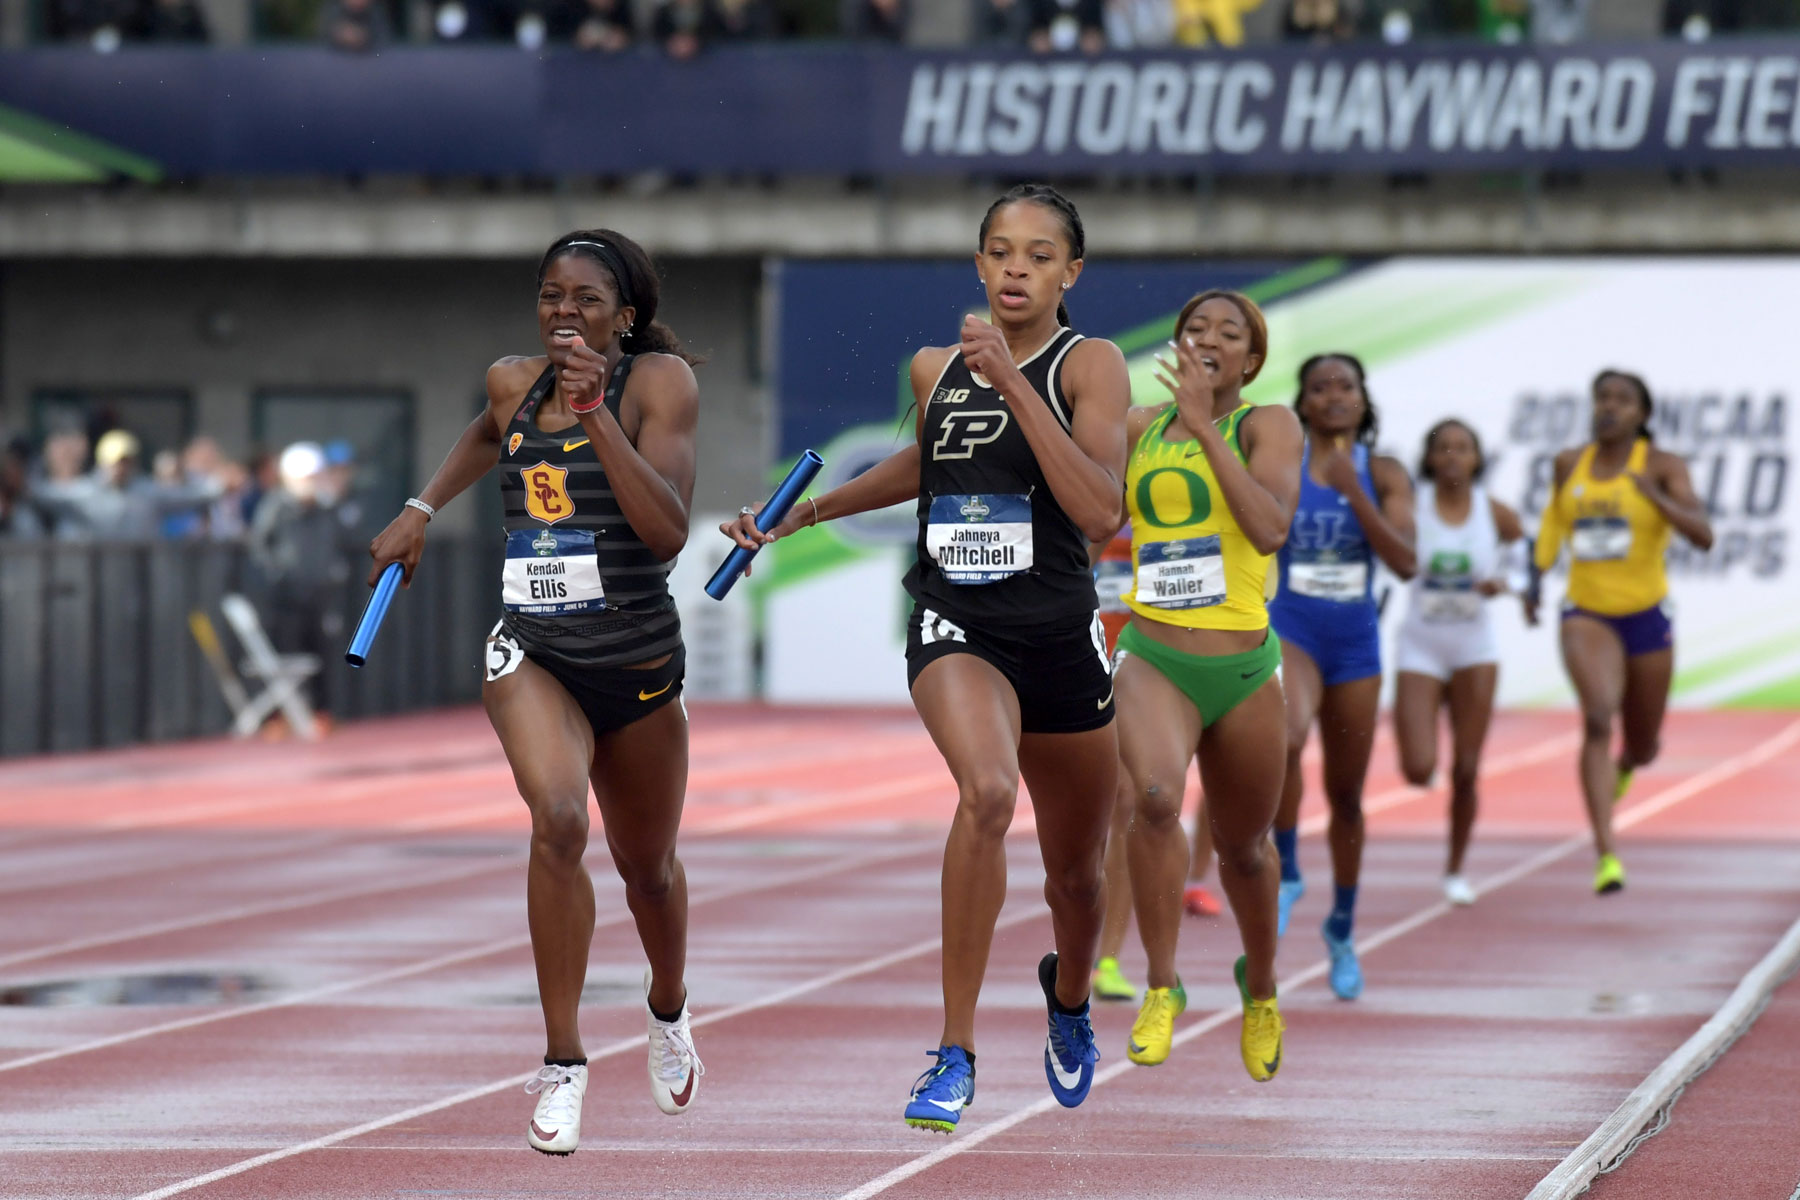 USC sports highlights 2018: women's track relay comeback win